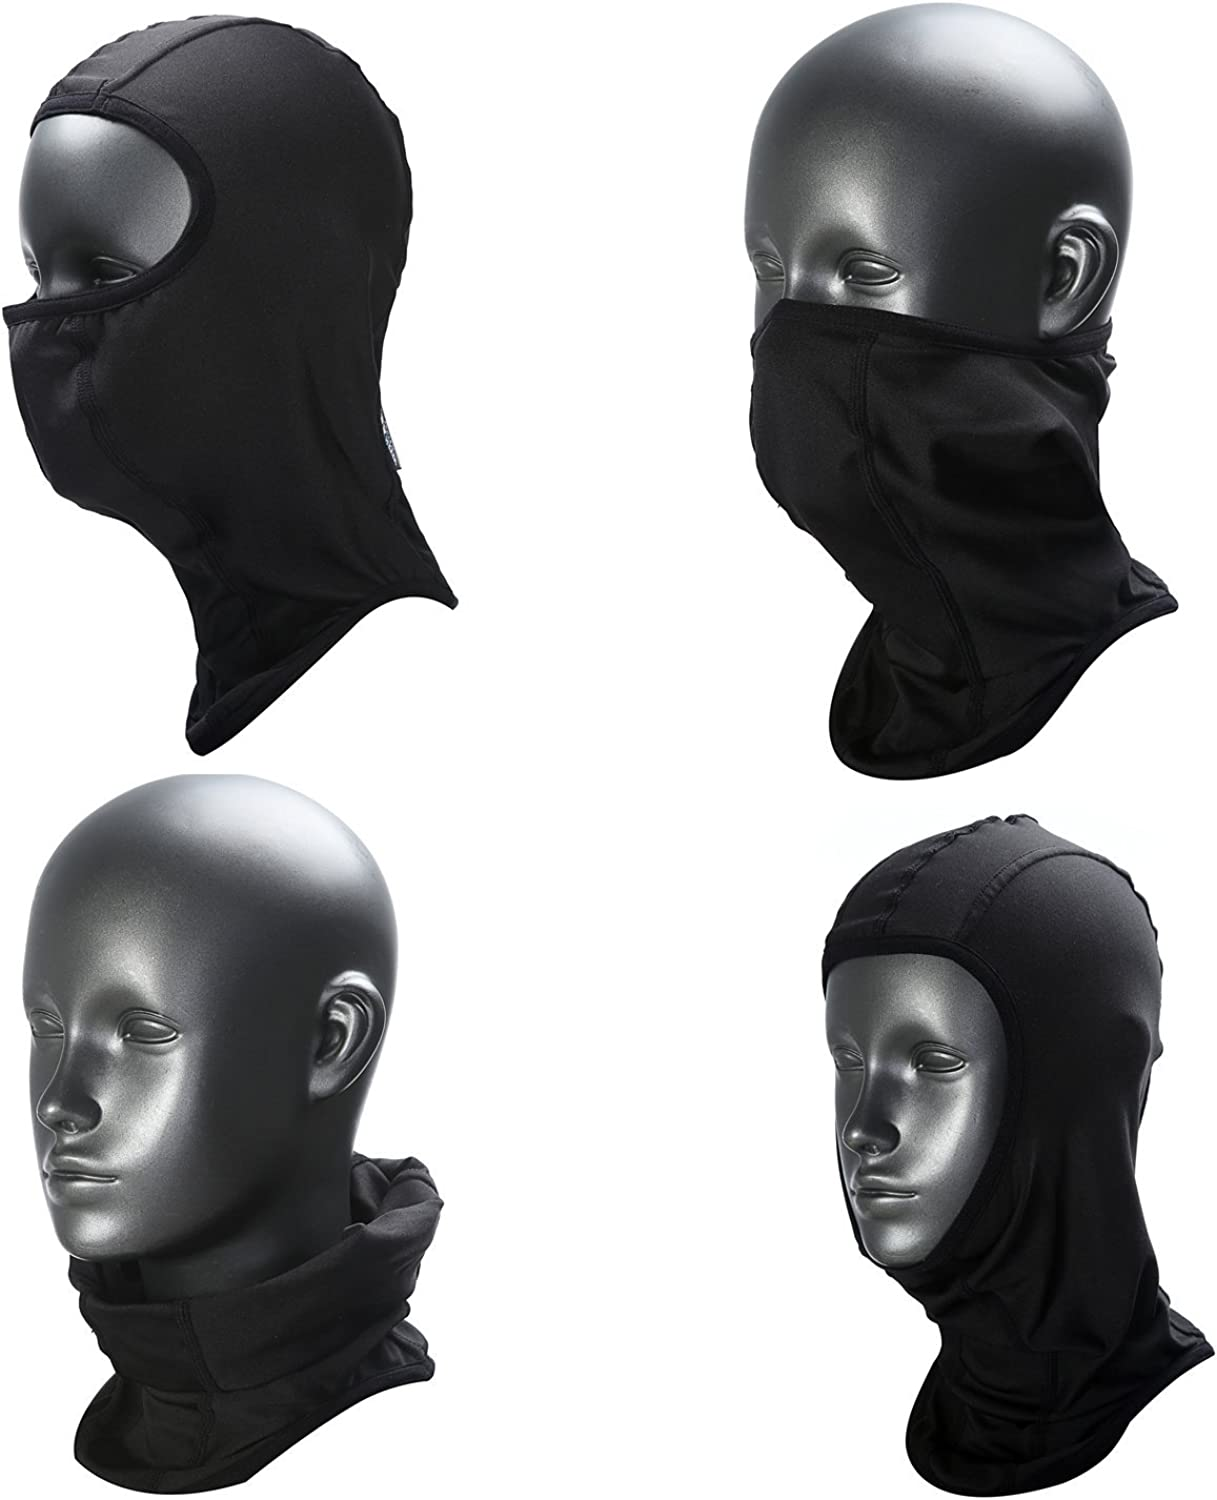 Weanas Balaclava Ski Domino Cold Weather Windproof Face Domino for Cycling Motorcycling Skiing Snowboarding and Winter Sports